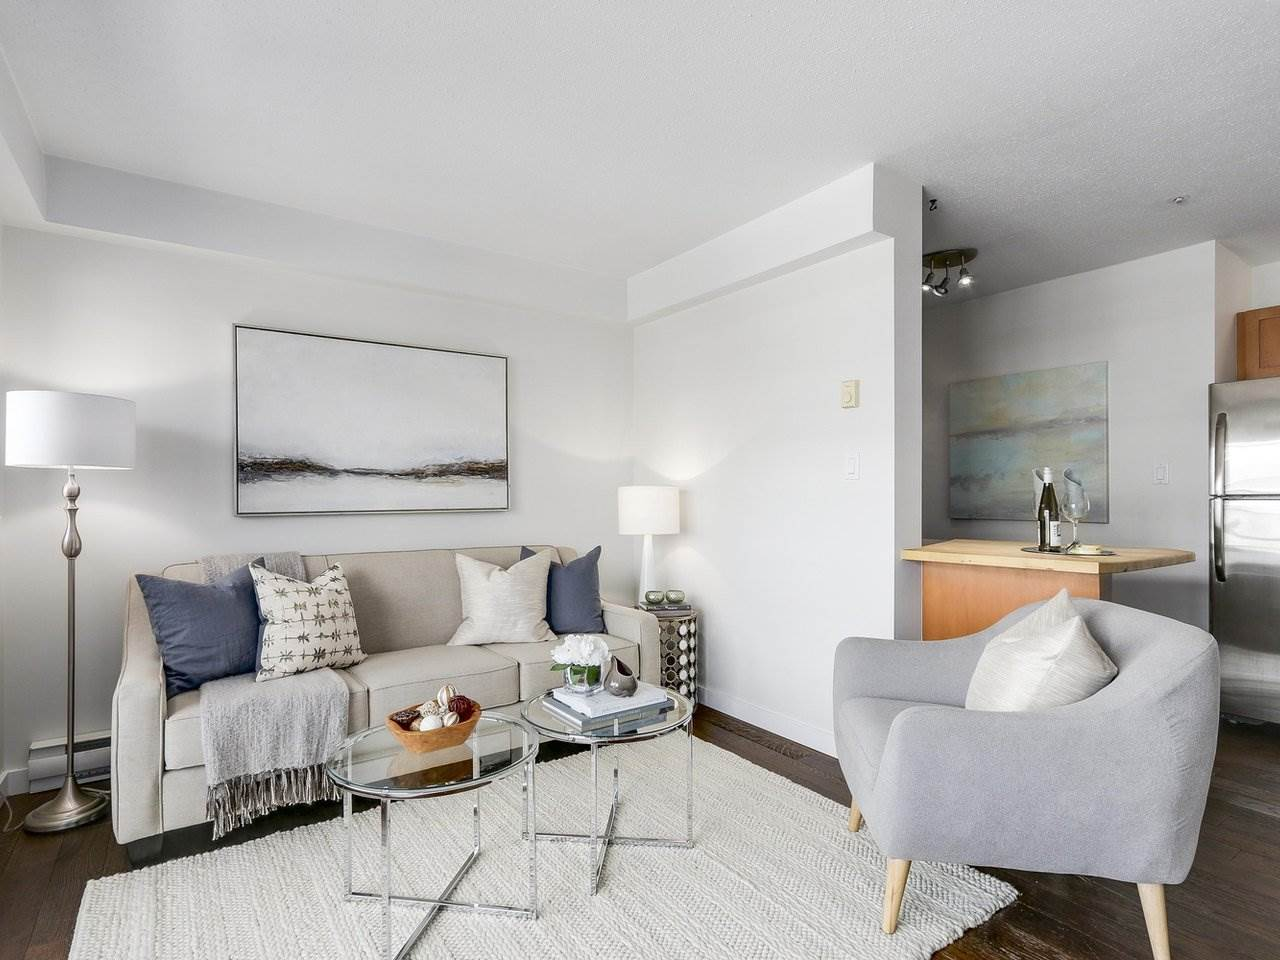 """Main Photo: 102 3788 W 10TH Avenue in Vancouver: Point Grey Condo for sale in """"The Grey Point"""" (Vancouver West)  : MLS(r) # R2169435"""